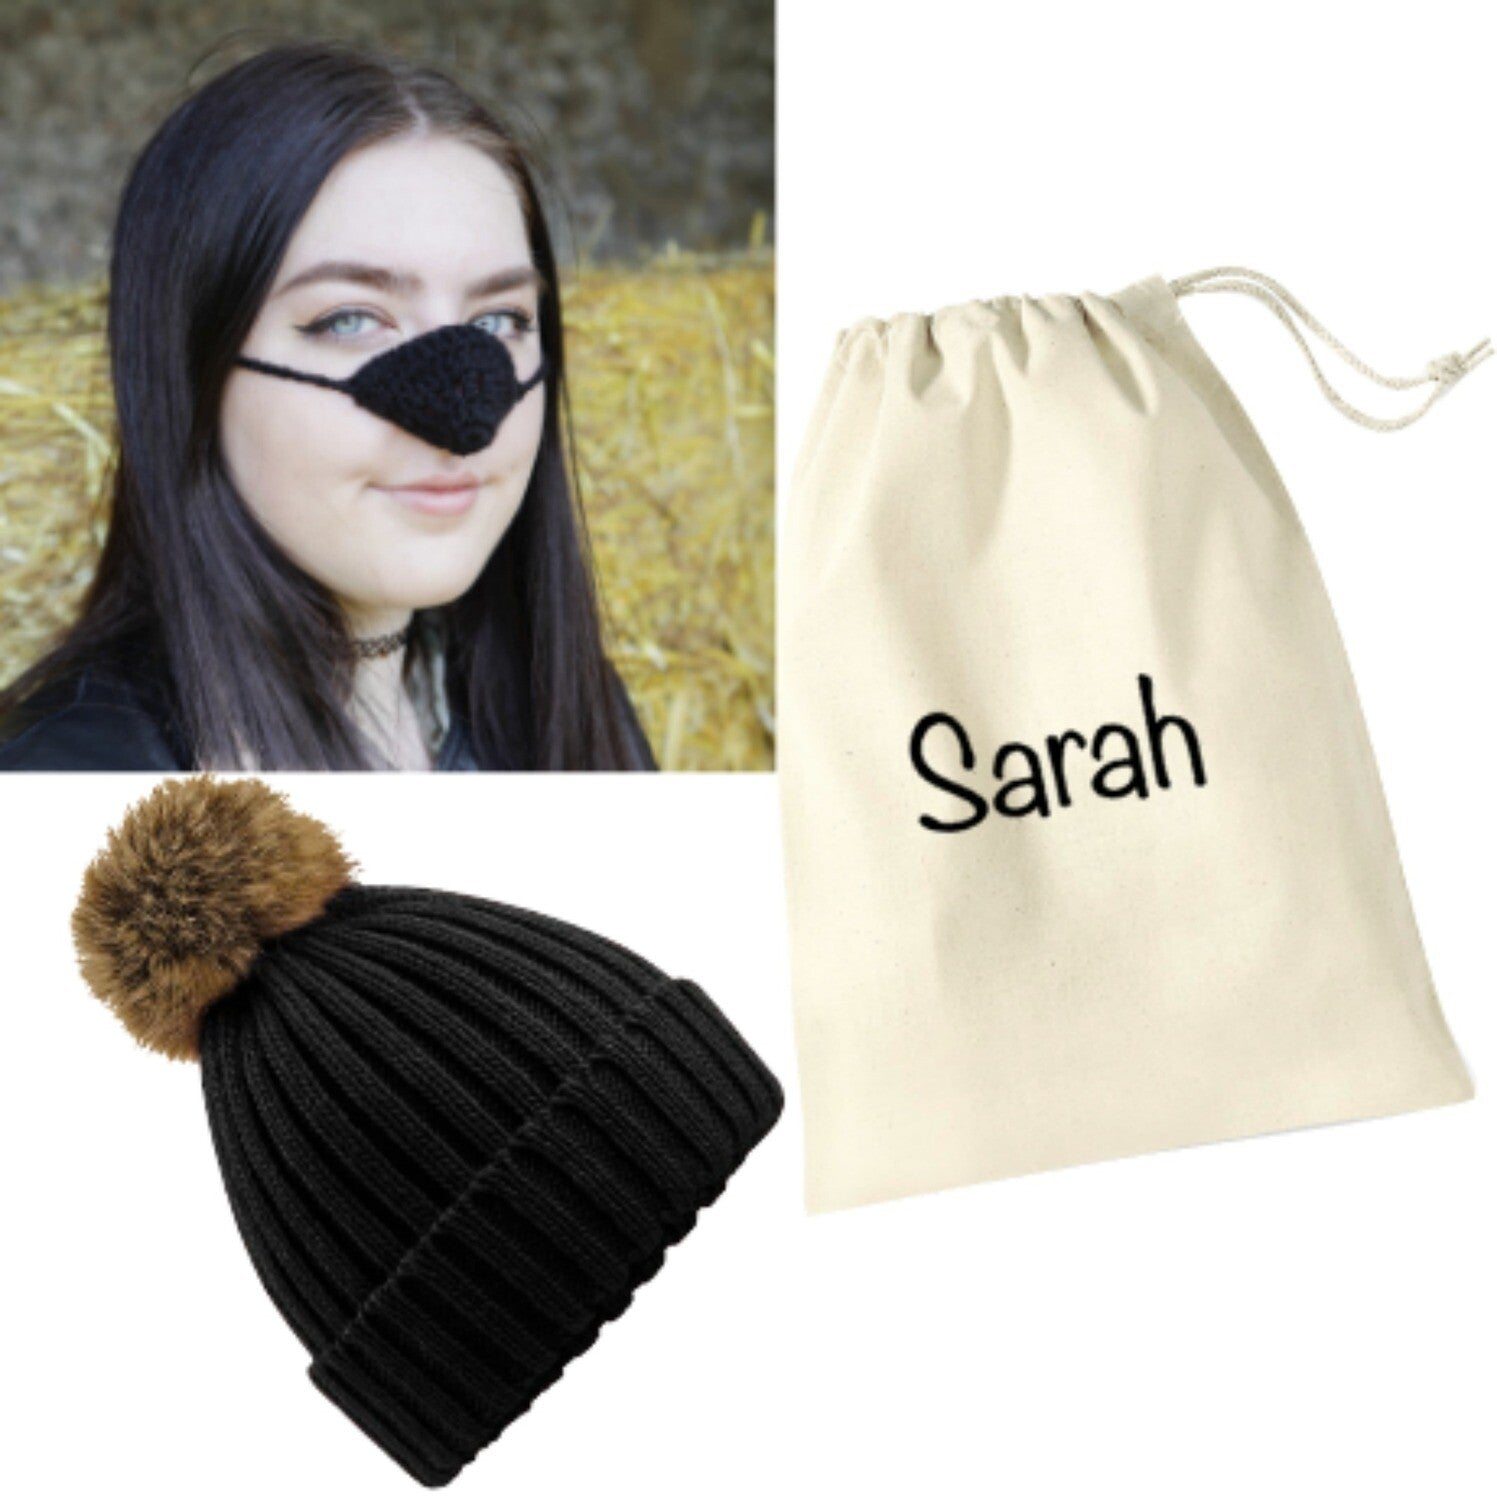 Personalised Black Keep Warm Kit: Black Fleece Nose Warmer, Pompom Hat & Personalised Gift Bag